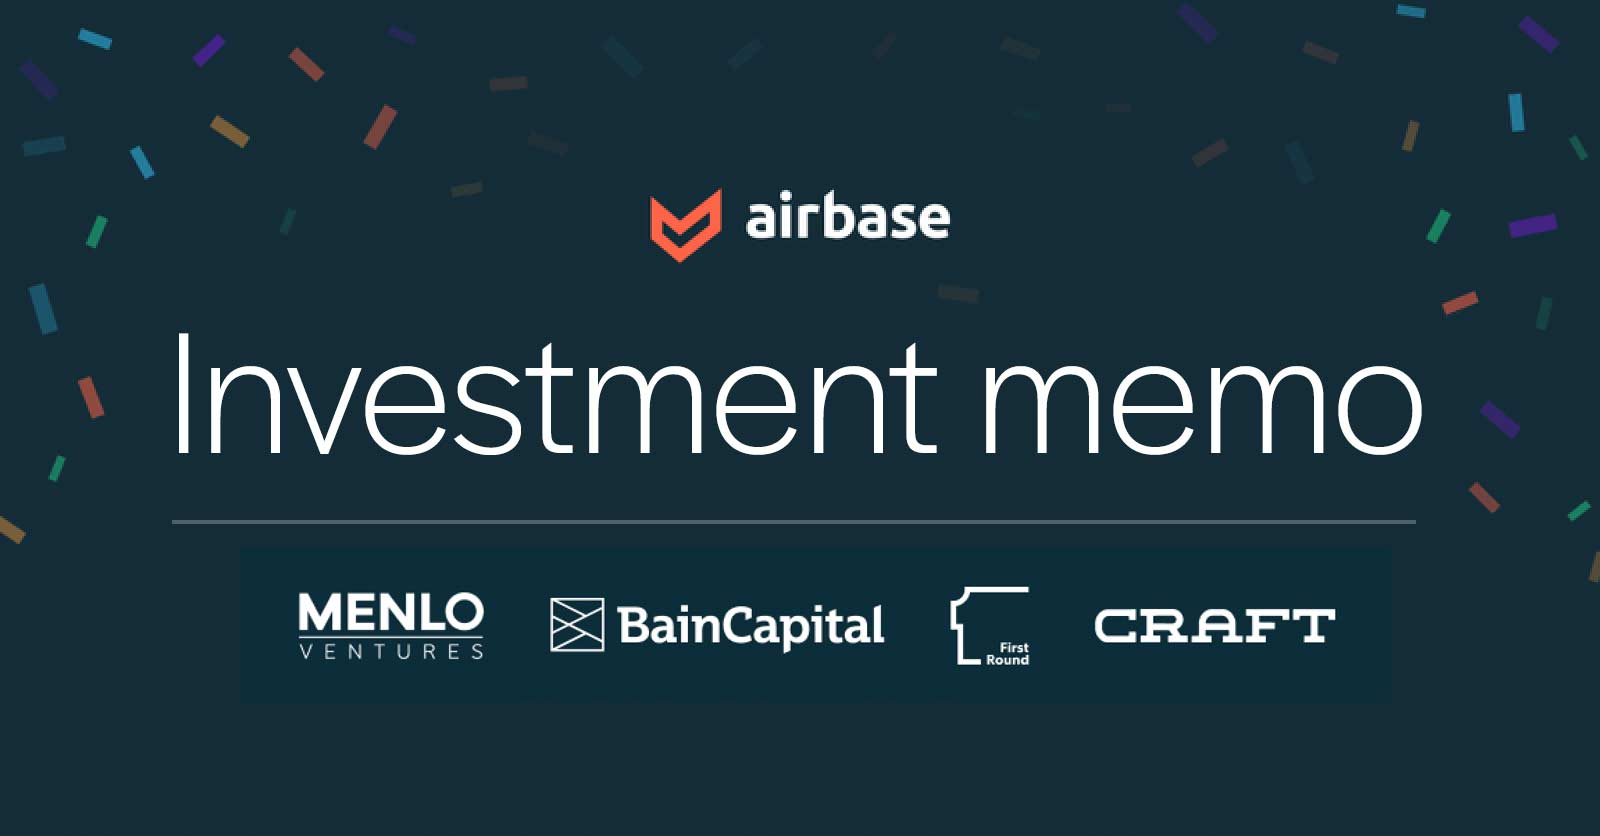 The investment memo that helped us raise $60M in 10 days.